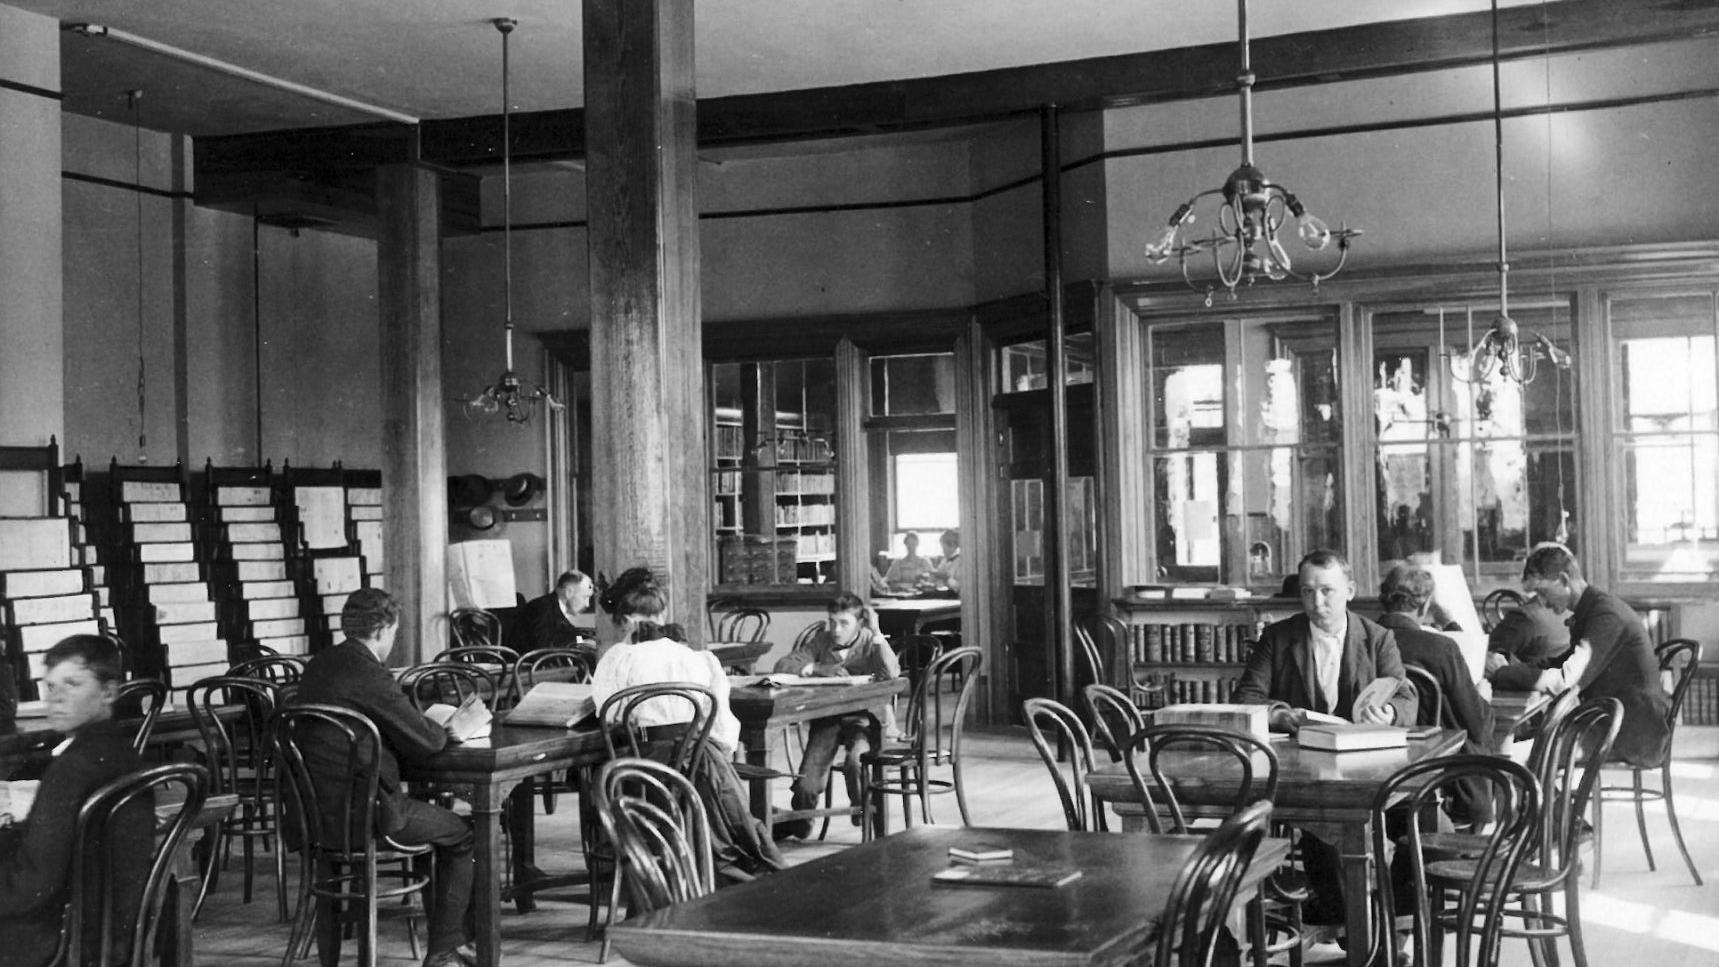 'Love Your Library': Lewis & Clark Library celebrates 150 years